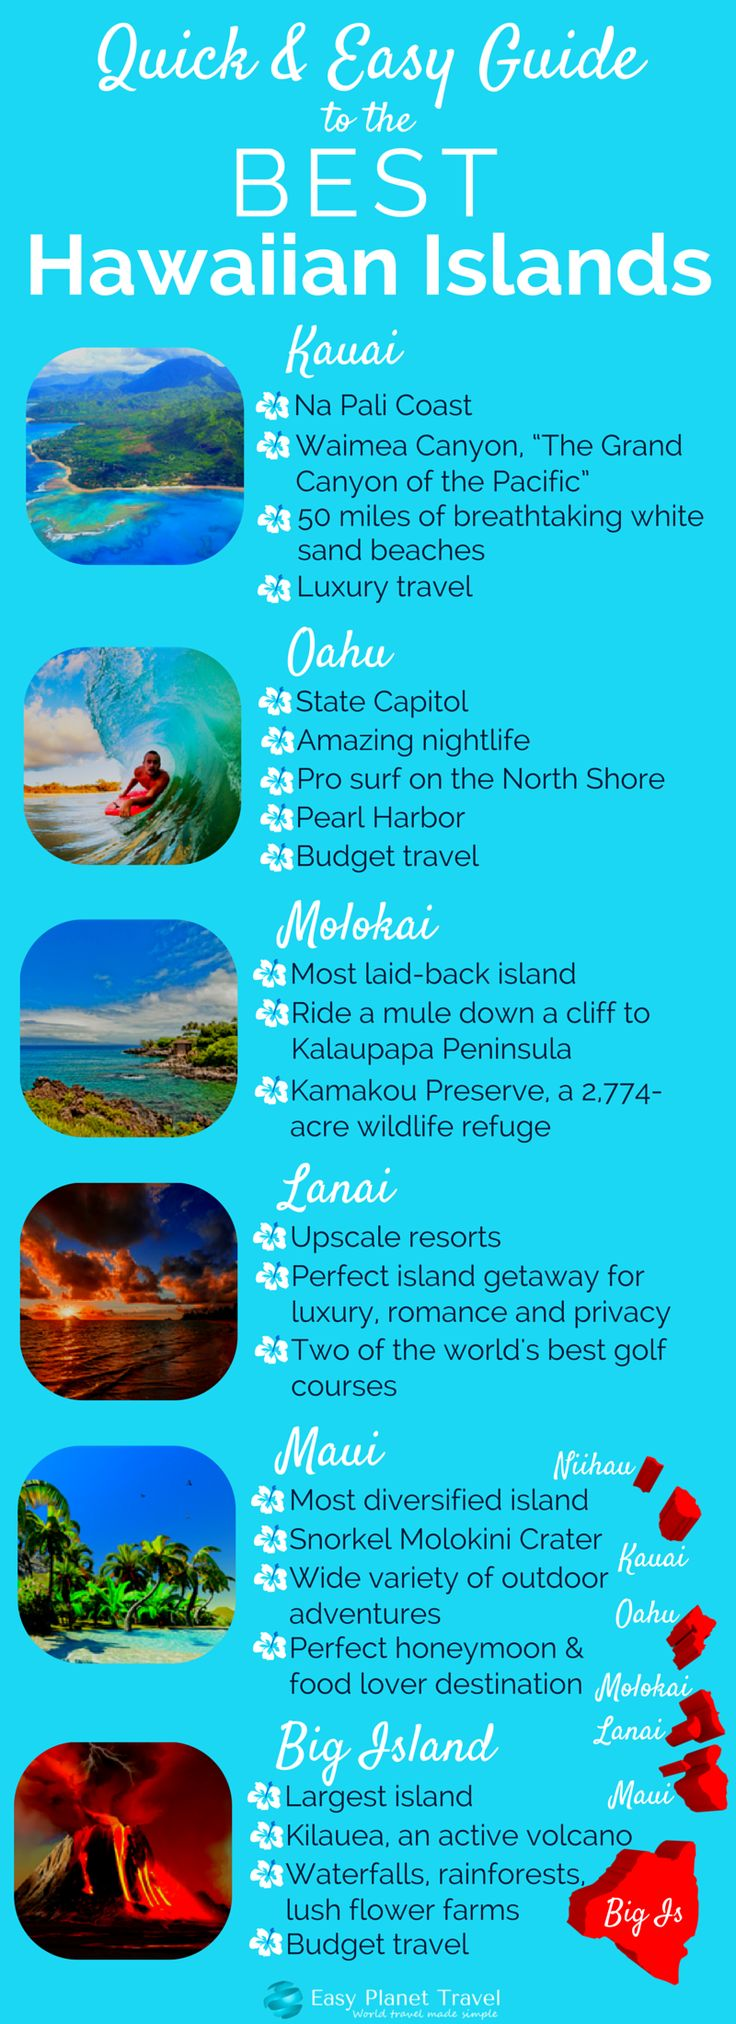 A quick and easy guide to choose the best island in Hawaii for you and your family! Family travel and traveling with kids can be so much fun and relaxing! Happy pinning!